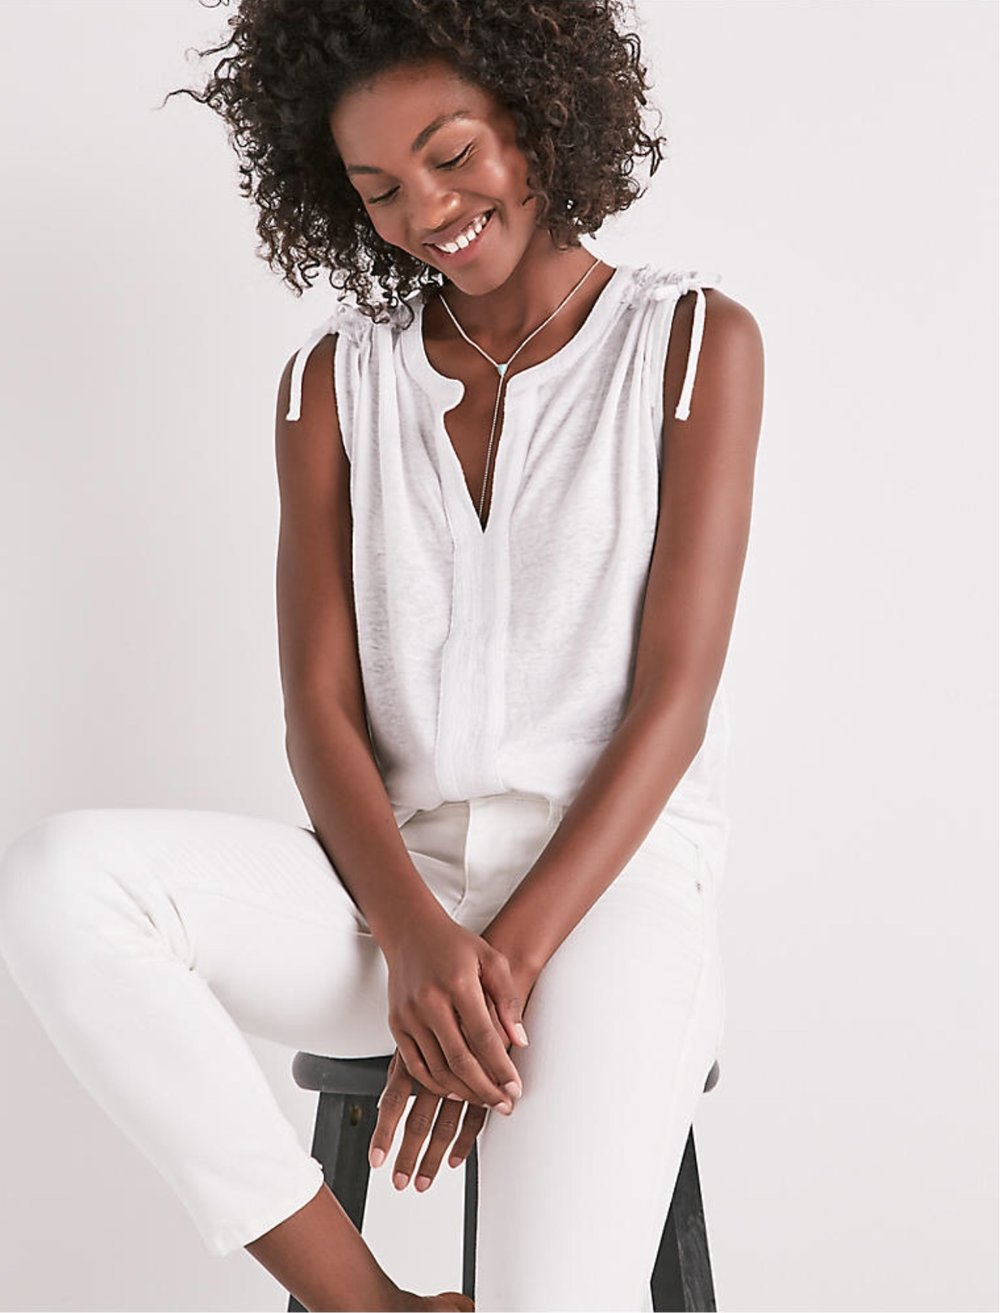 From Lucky Brand.com